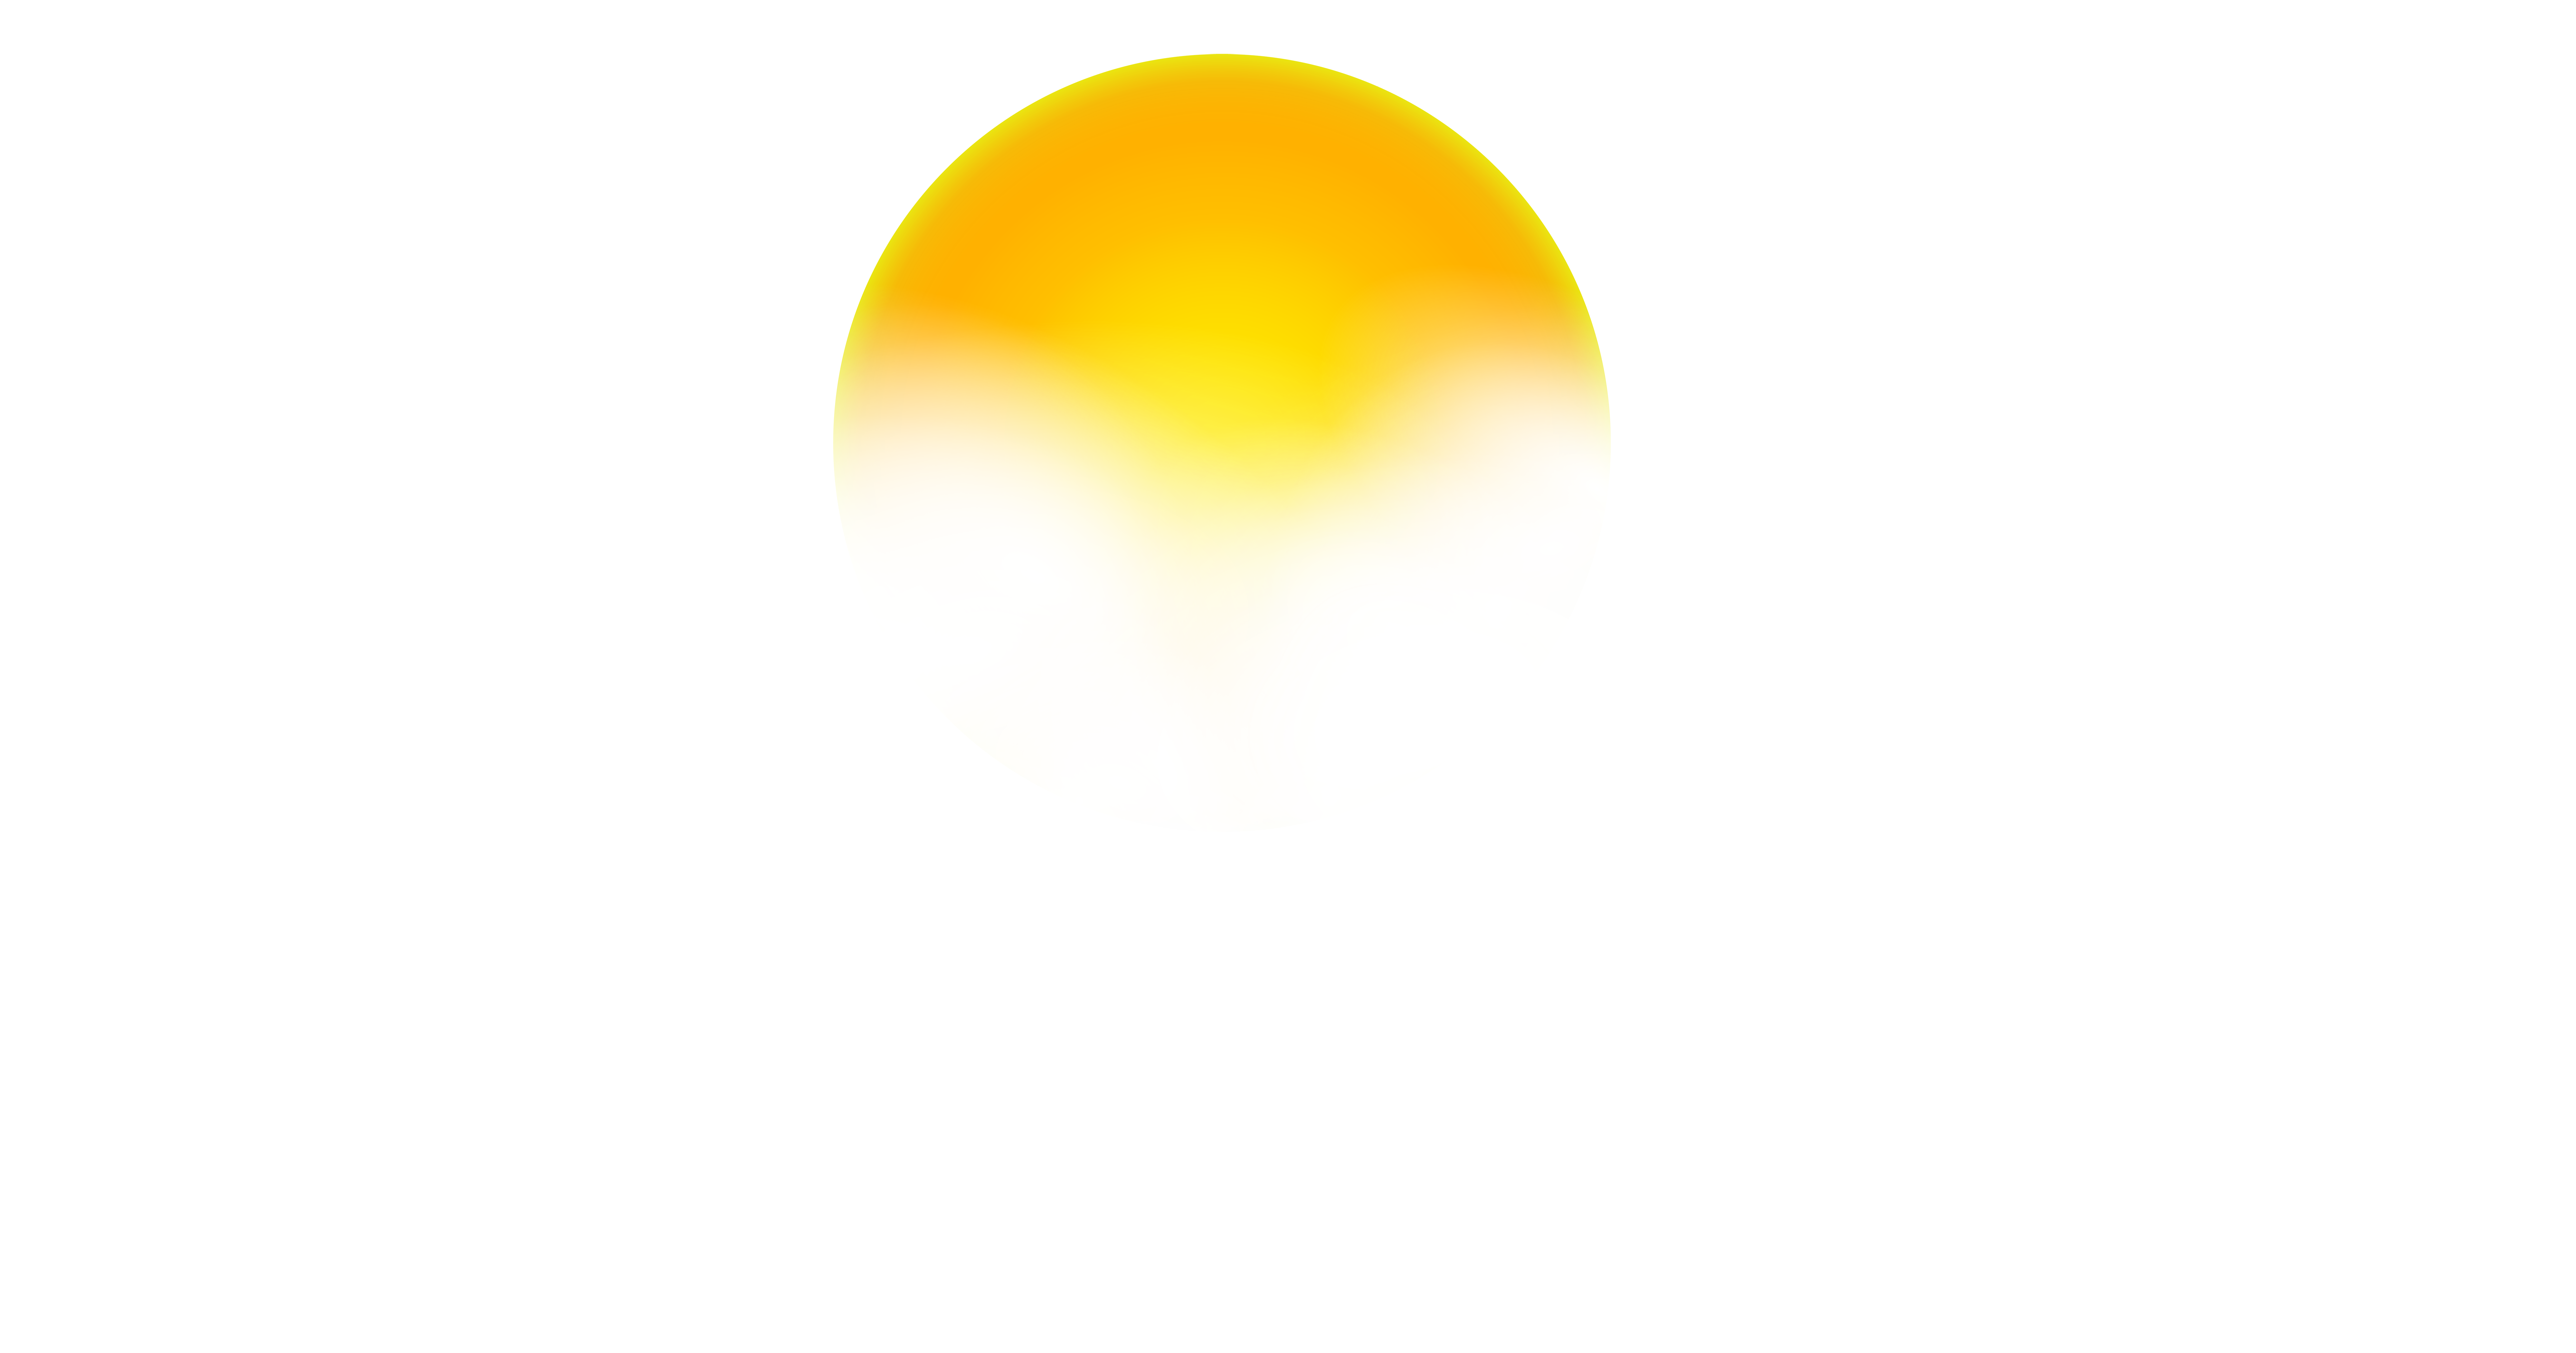 Sun and clouds png. With cloud large transparent